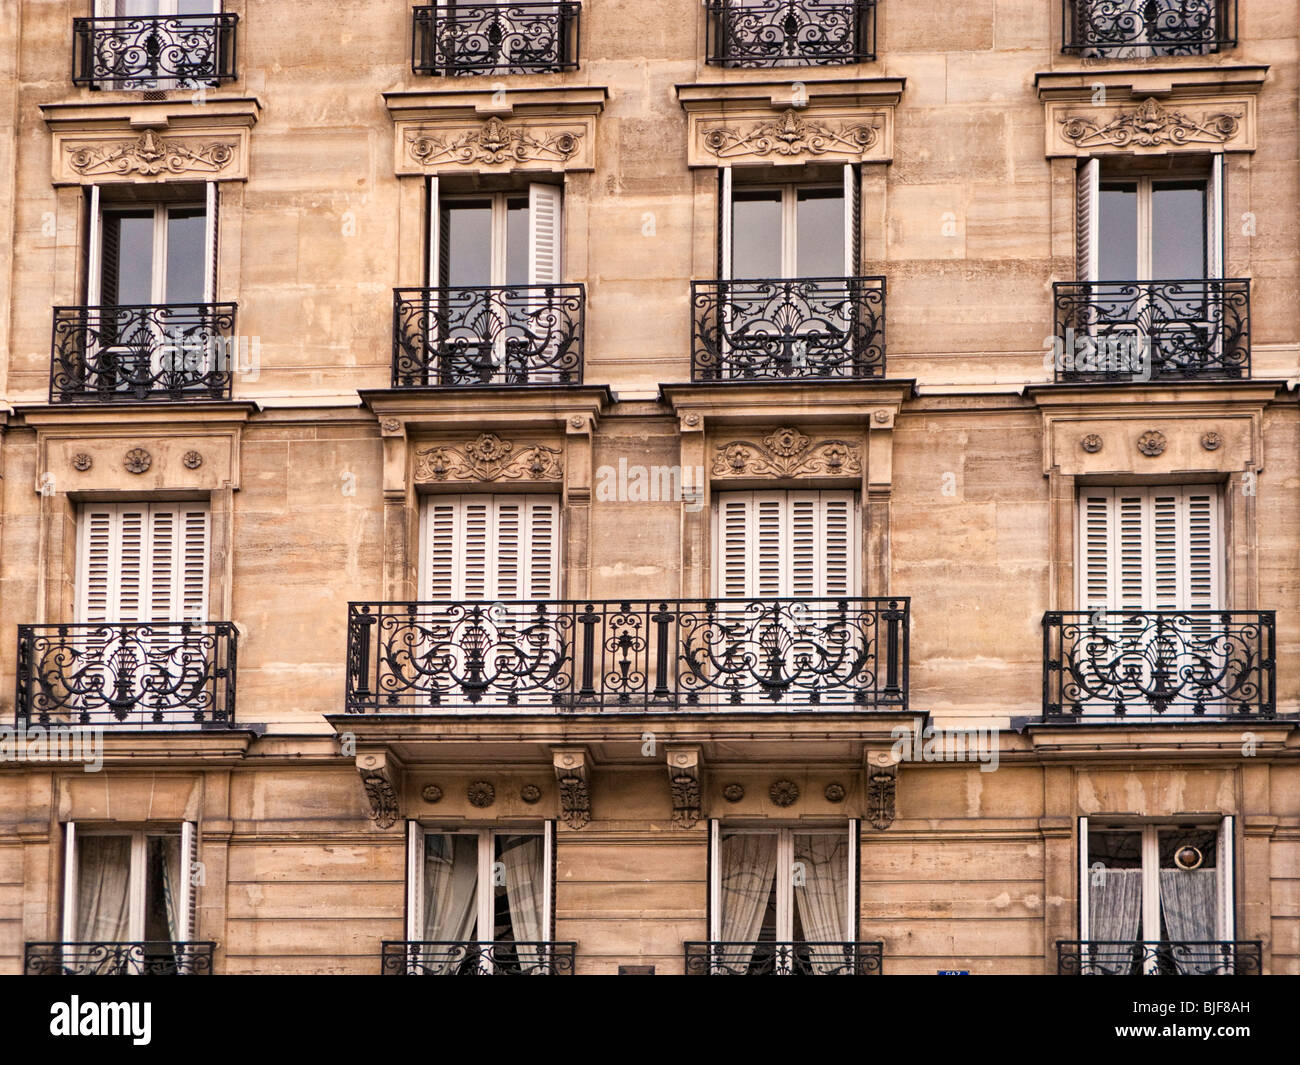 Ornate apartment block exterior with balcony in Paris, France, Europe - Stock Image